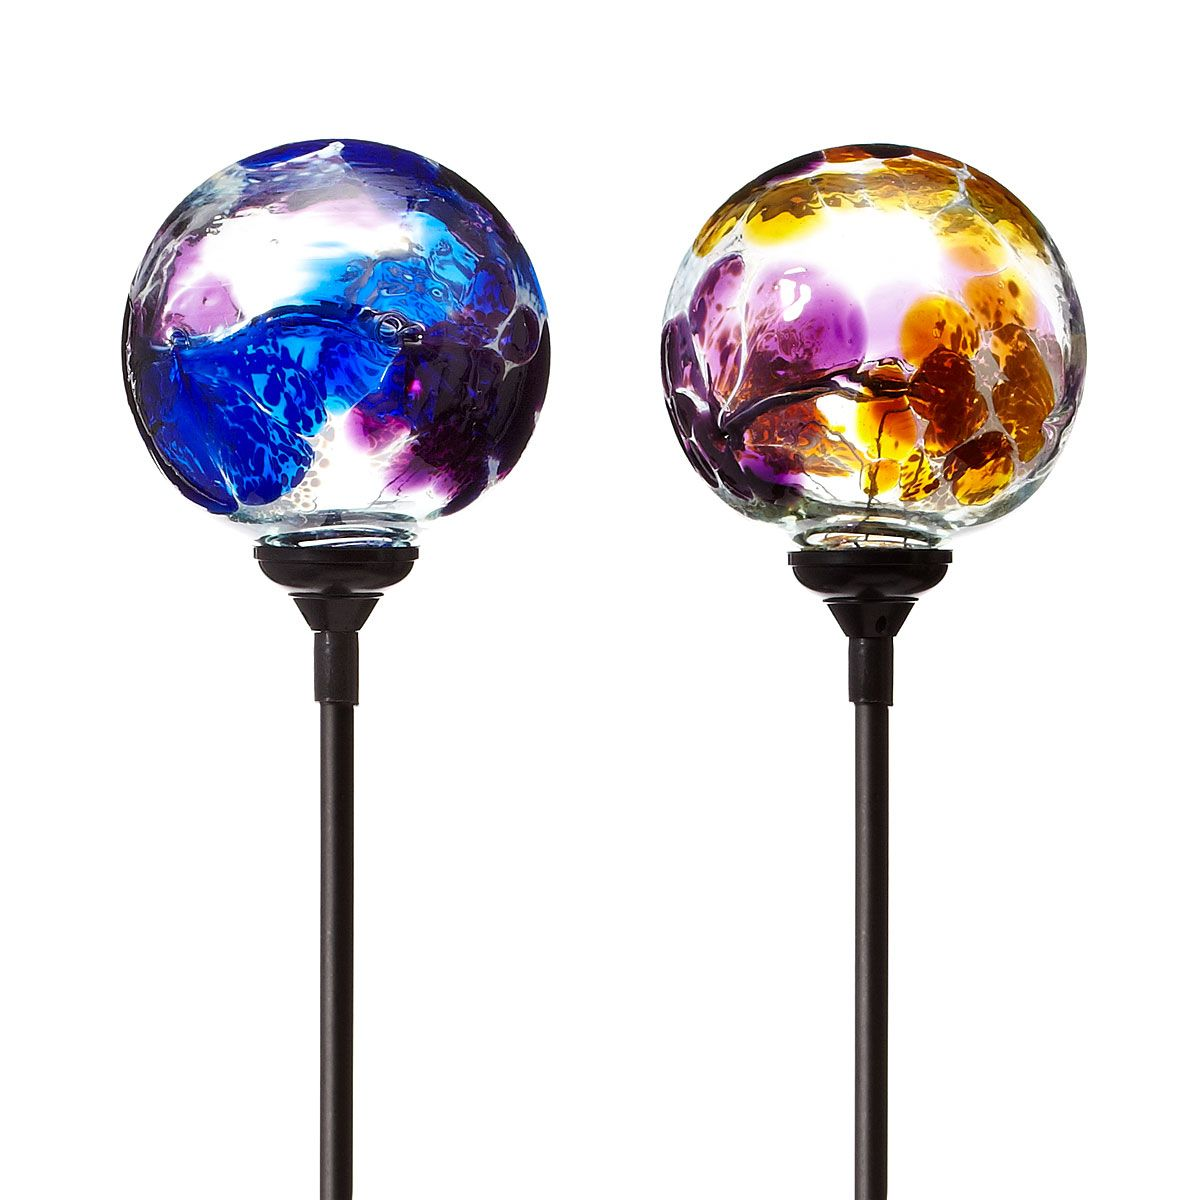 SOLAR LIGHT GARDEN STAKE   FLOWER GLOBES | Garden Art, Glass Globe